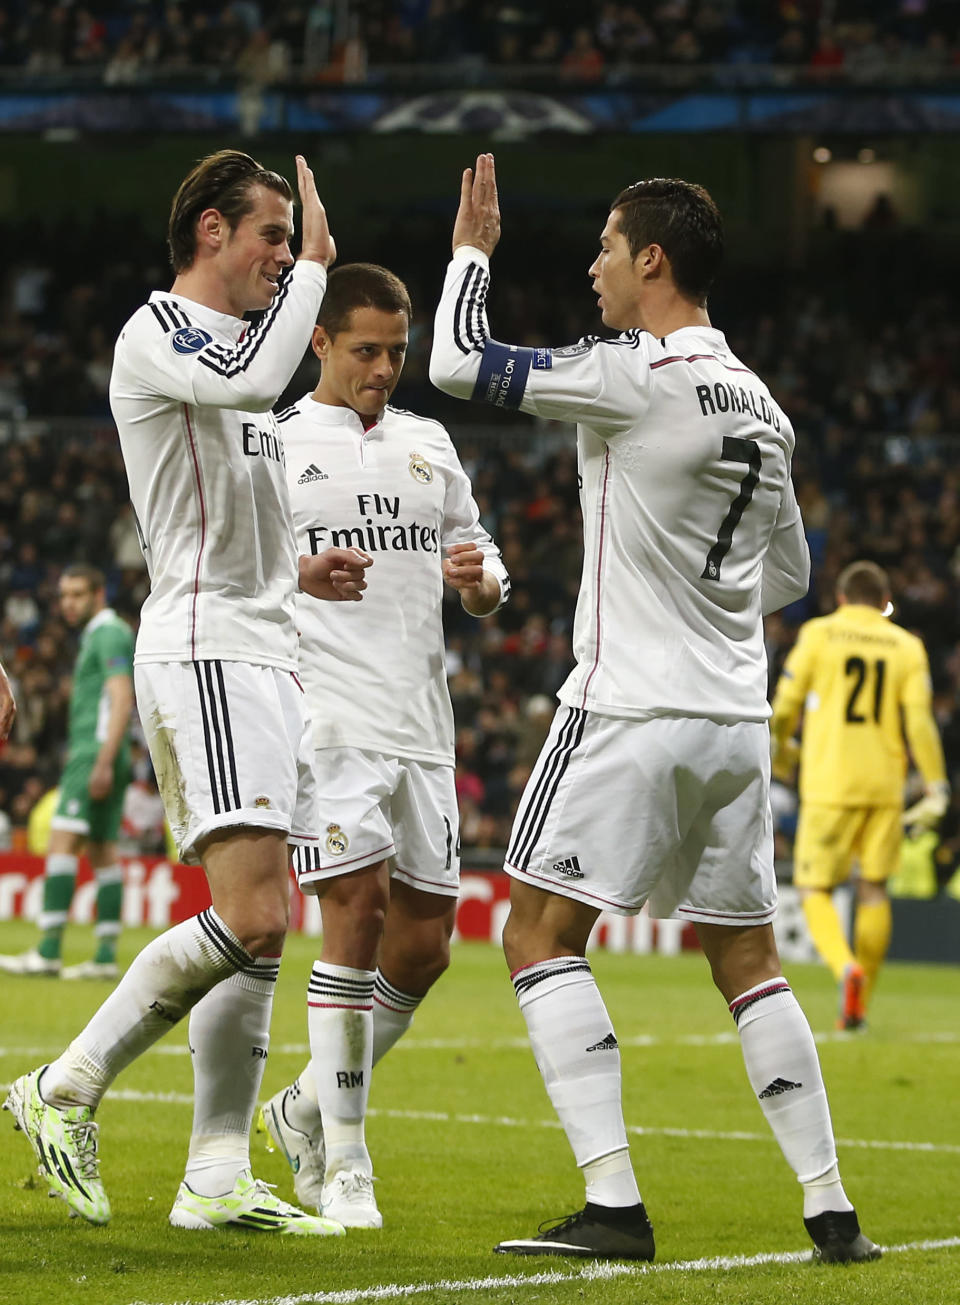 Real Madrid's Gareth Bale, left congratulates Cristiano Ronaldo, right after he scored the team's first goal from a penalty during a Group B Champions League soccer match between Real Madrid and Ludogorets at the Santiago Bernabeu stadium in Madrid, Spain, Tuesday, Dec. 9, 2014. (AP Photo/Andres Kudacki)